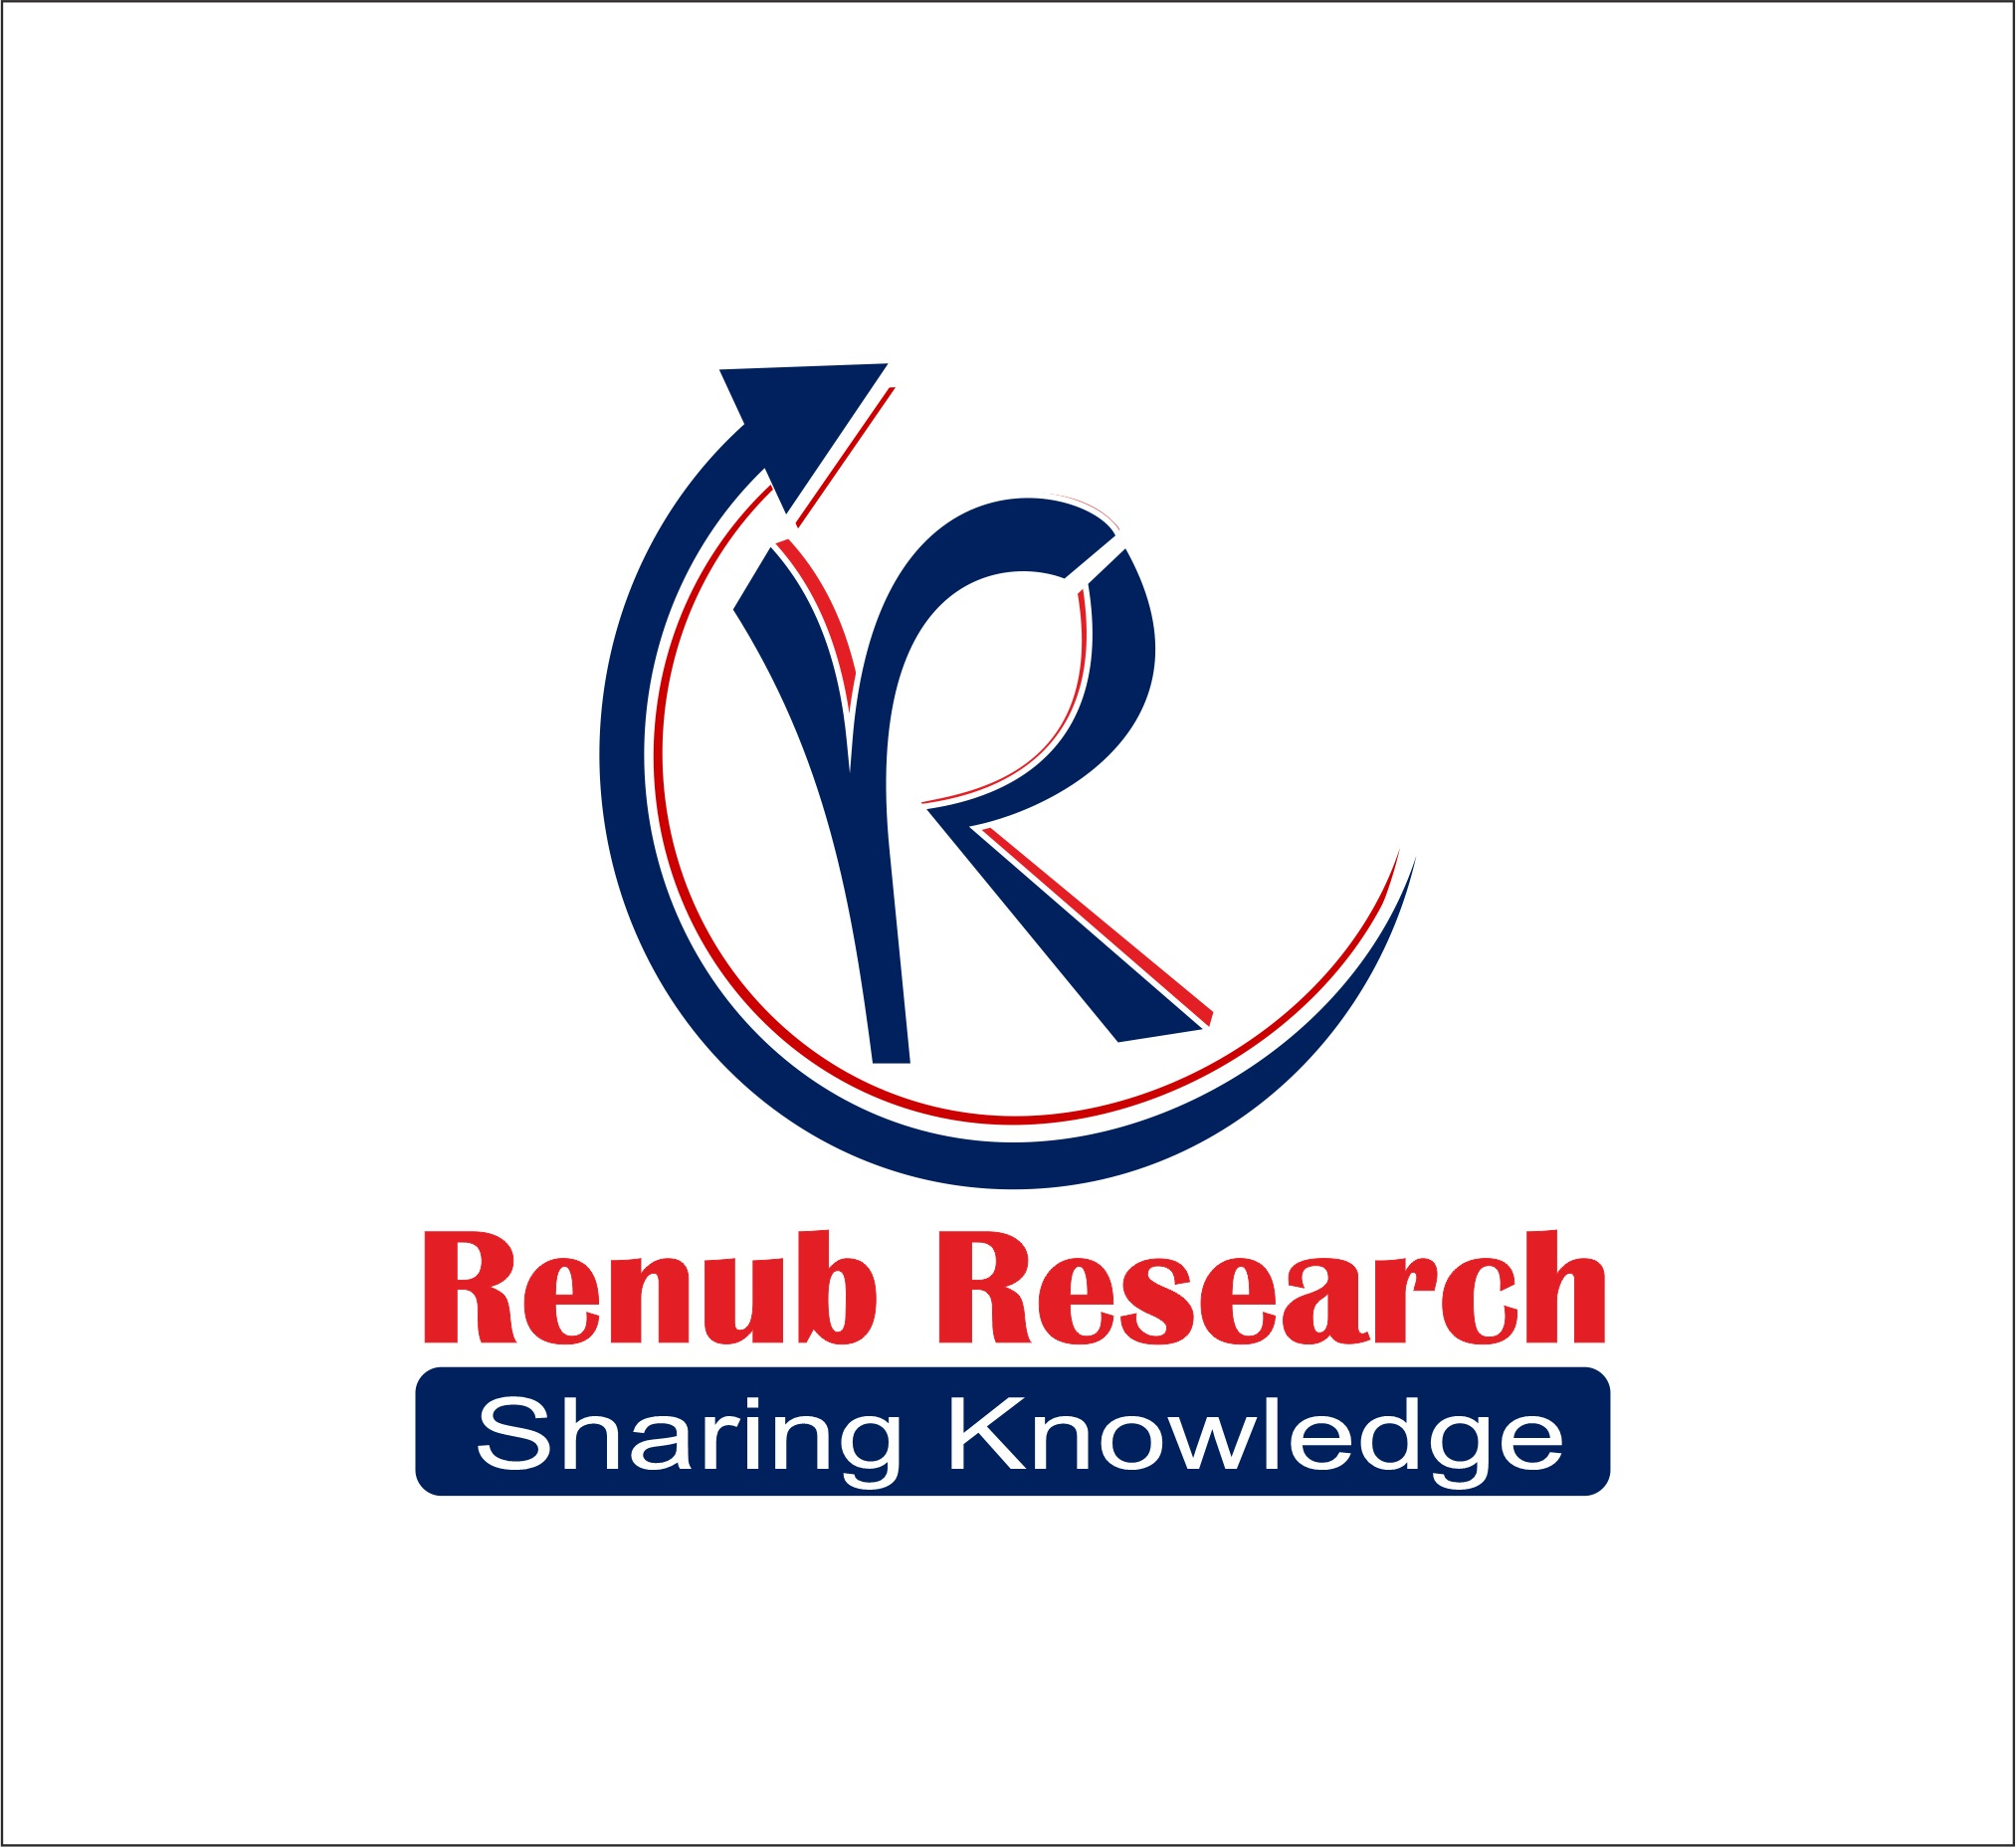 Japan Hotel Market is expected to be 26.8 Billion by the end of the year 2025 - Renub Research